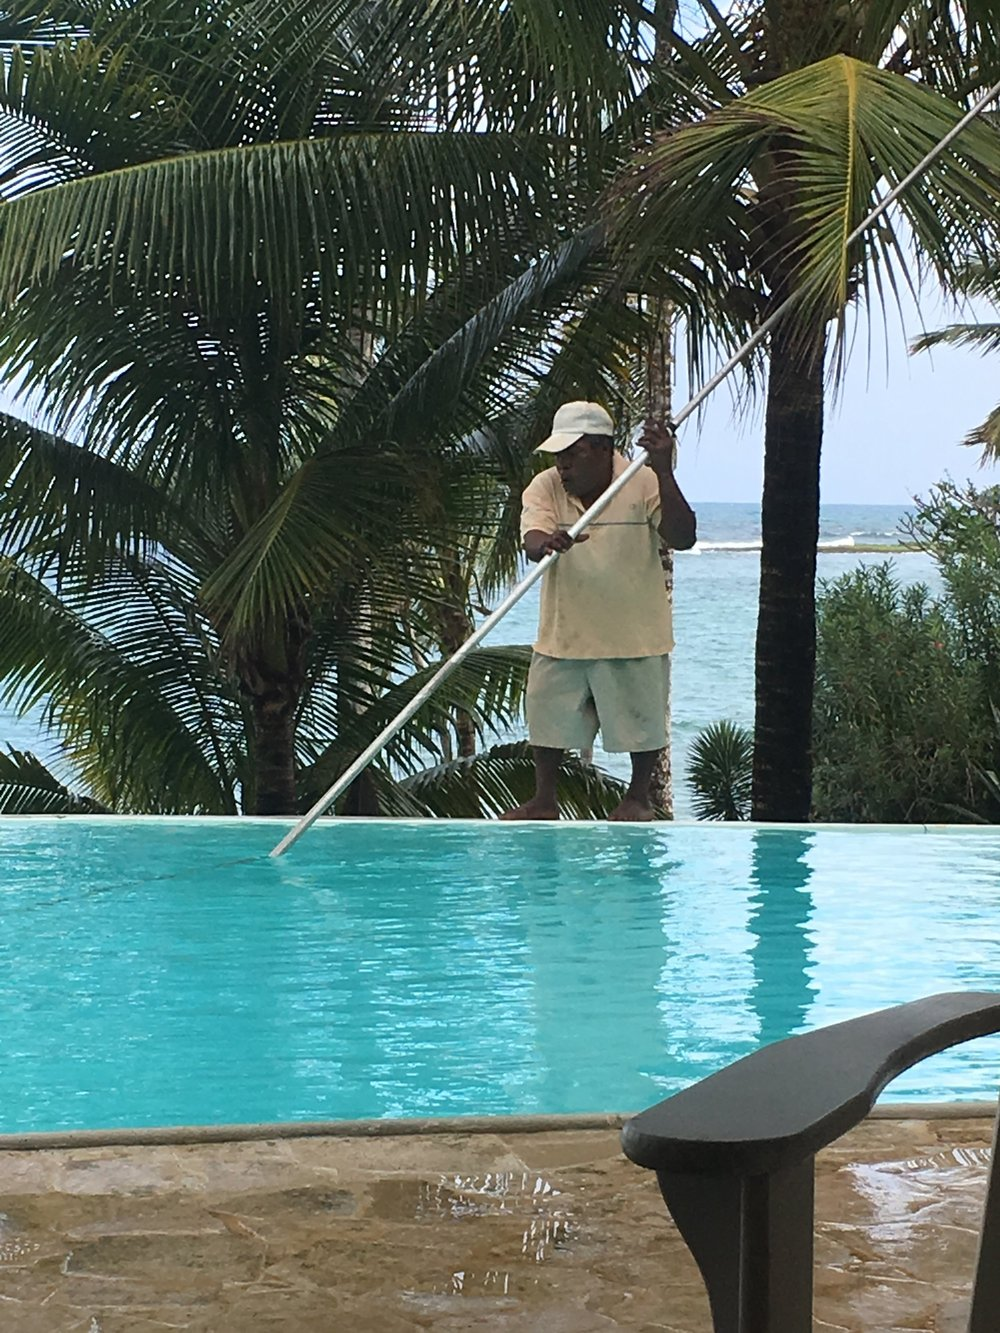 We no longer clean our pool. He does a much better job!